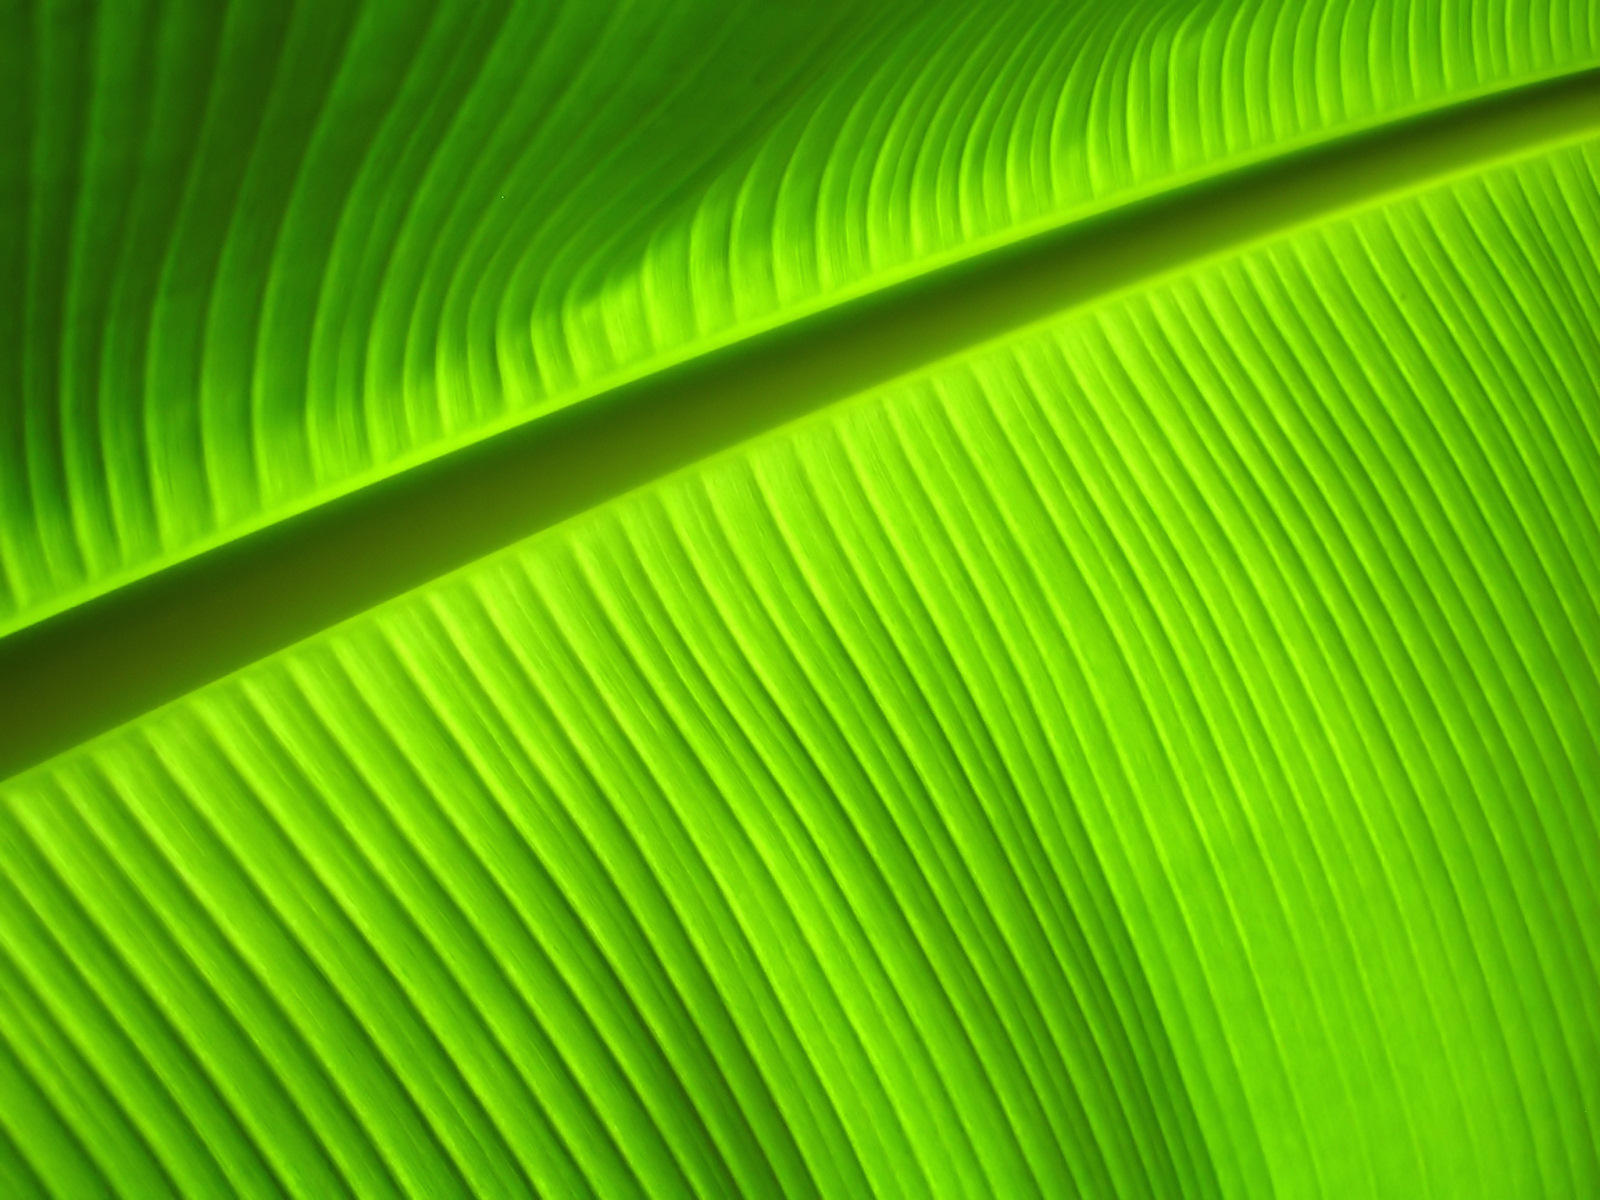 download Banana Leaf Close Up wallpaper 1600x1200